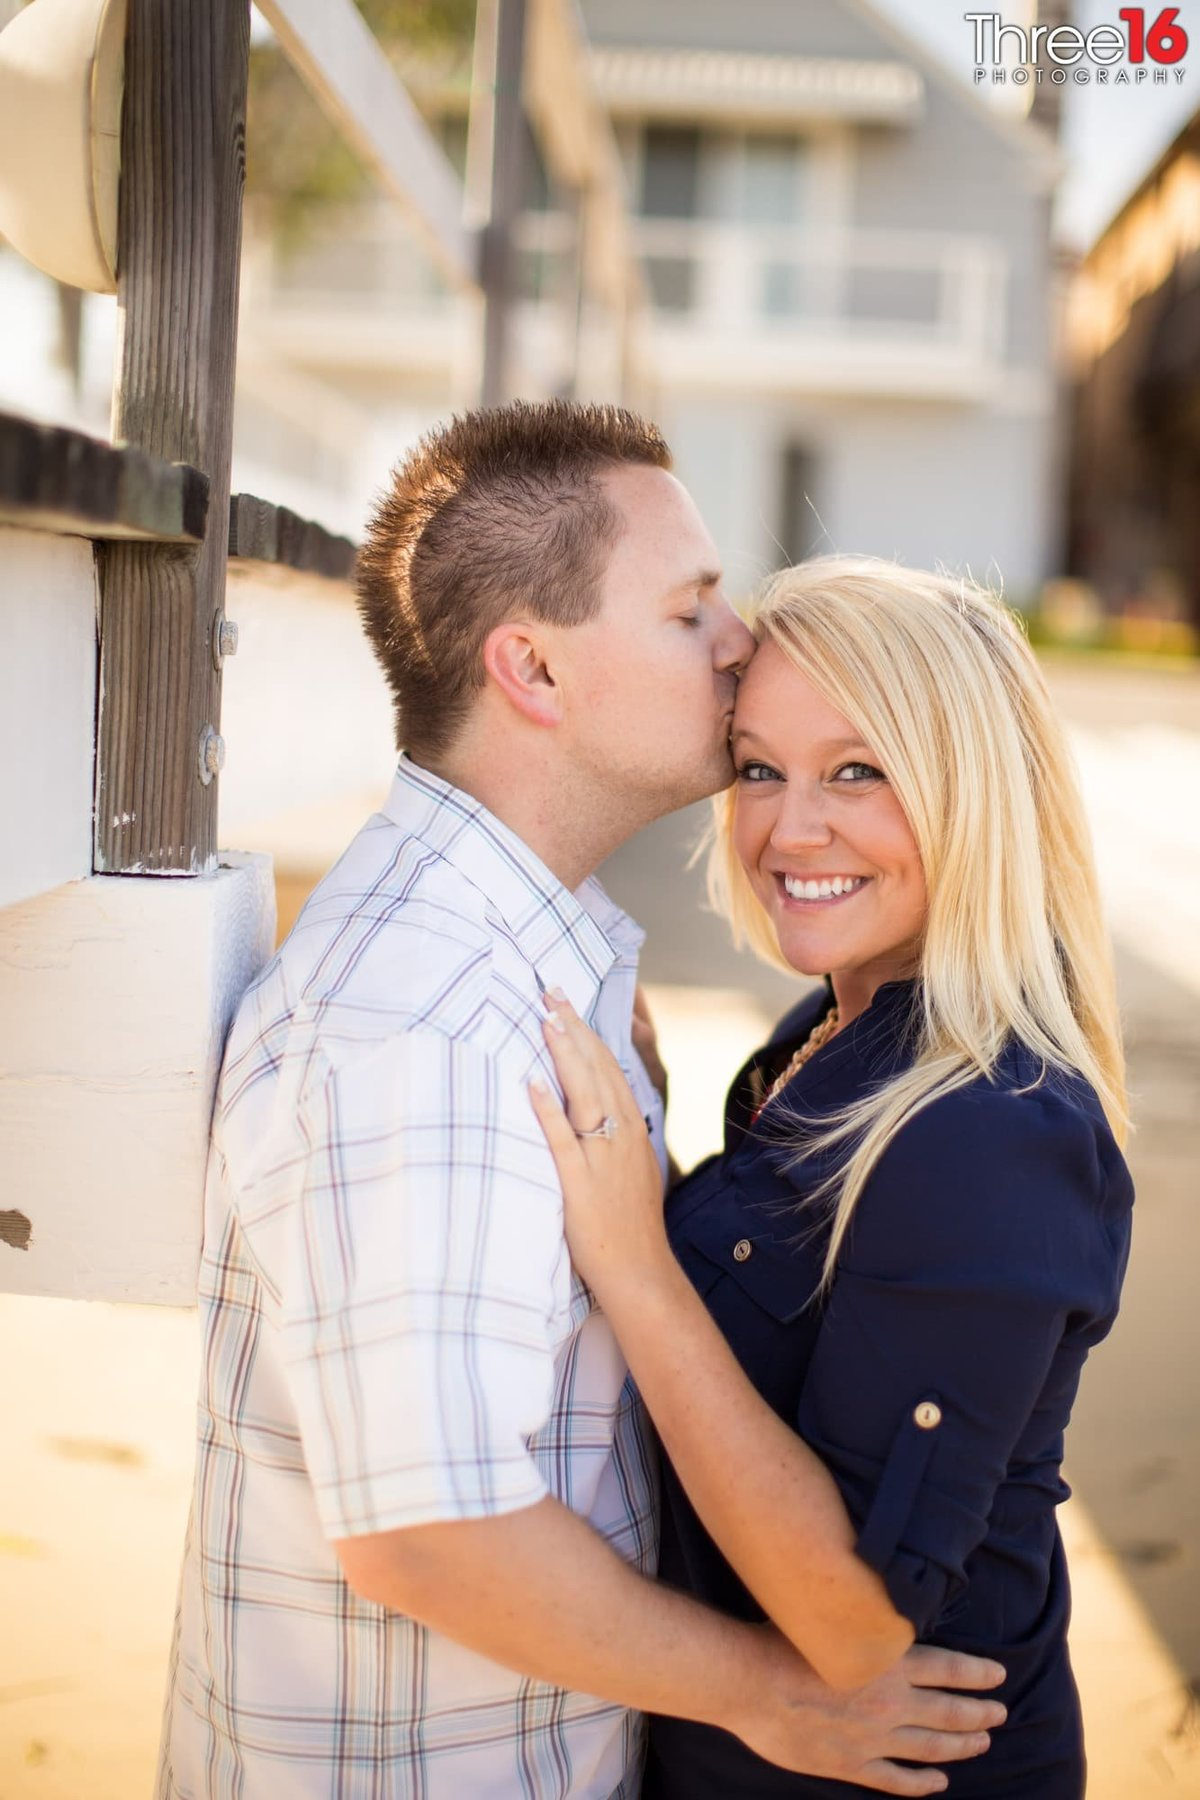 Newport Beach Pier Engagement Photos Orange County Newport Beach Weddings Professional Photographer